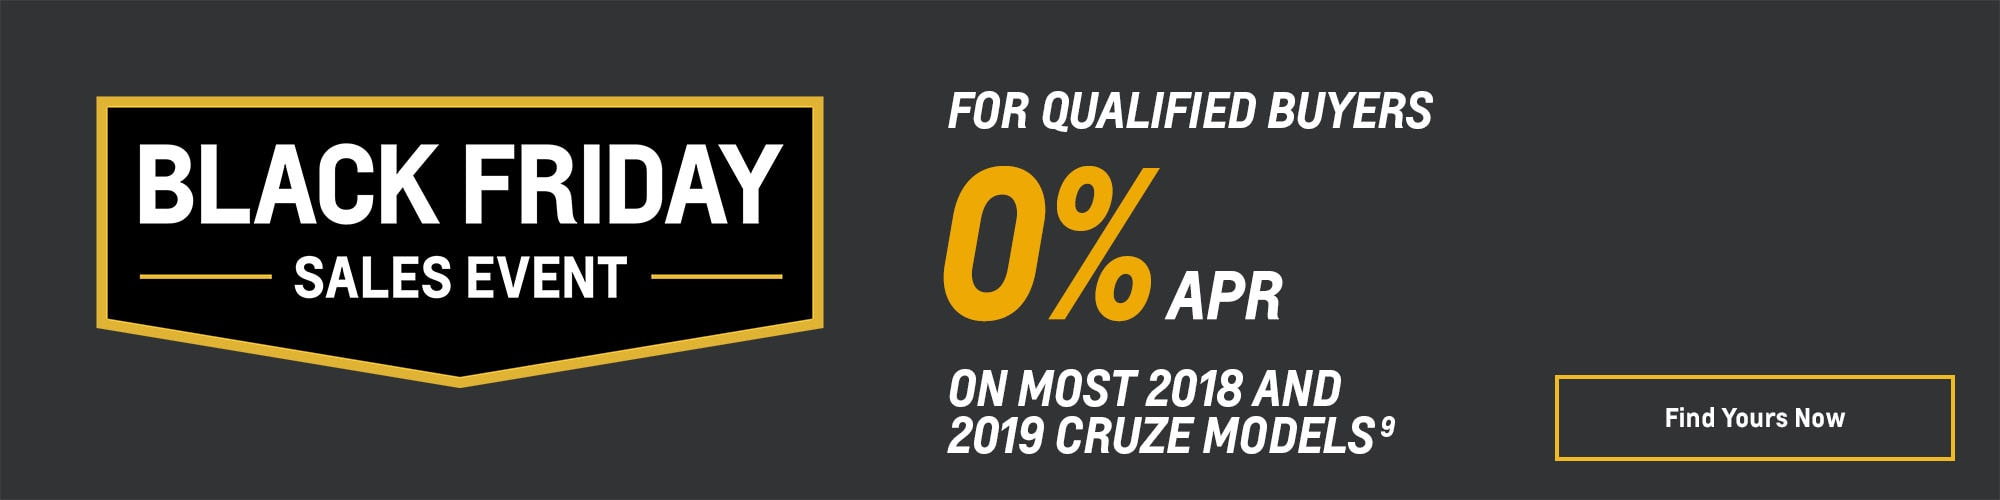 Black Friday Chevy Deals and Offers: Cruze 0% APR